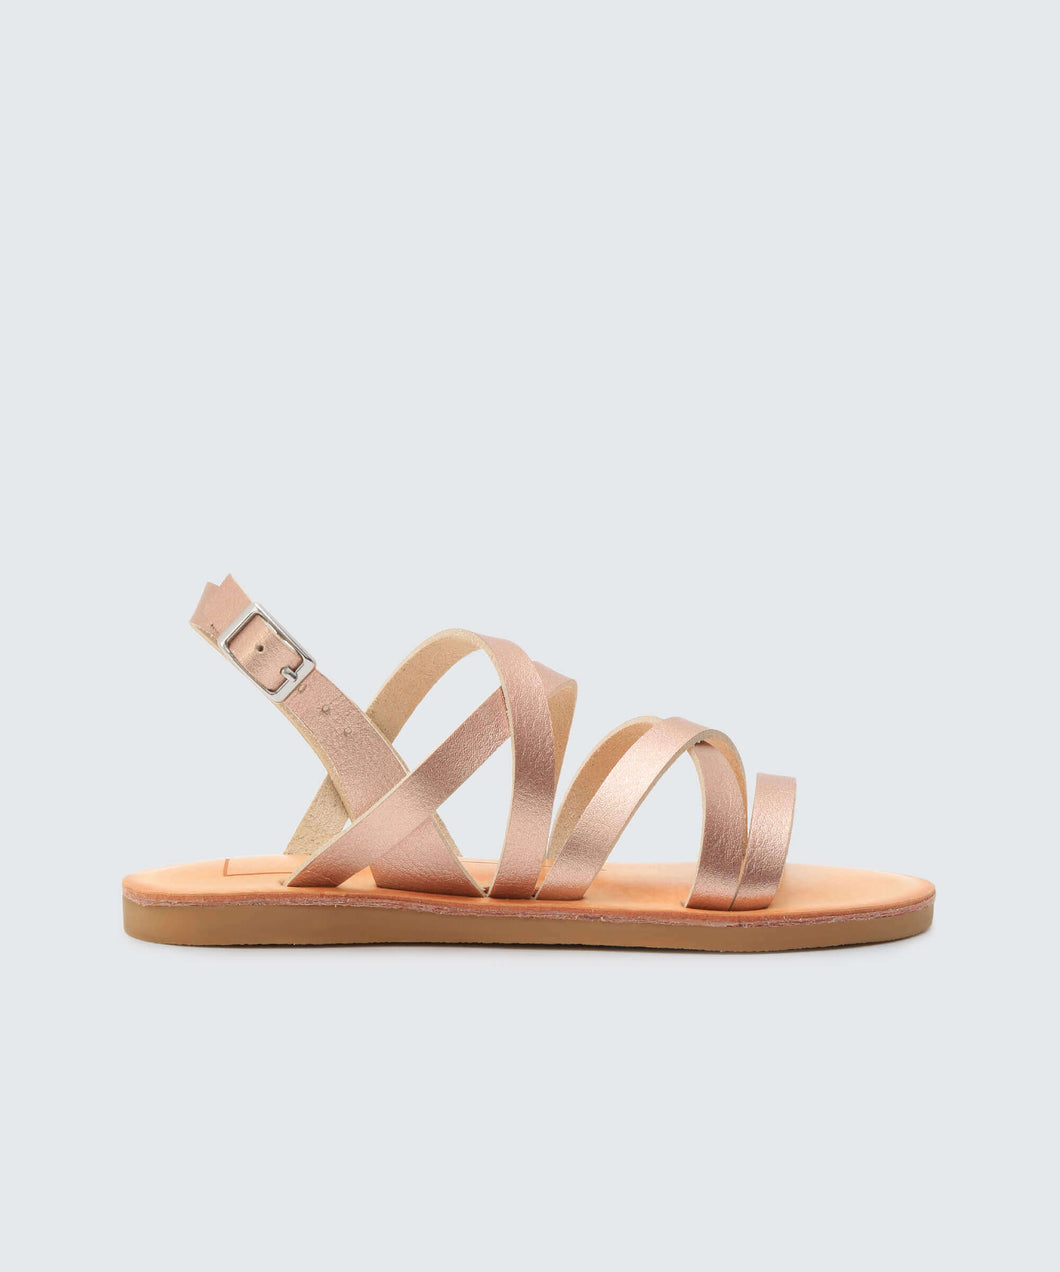 JAHNE SANDALS IN ROSE GOLD -   Dolce Vita